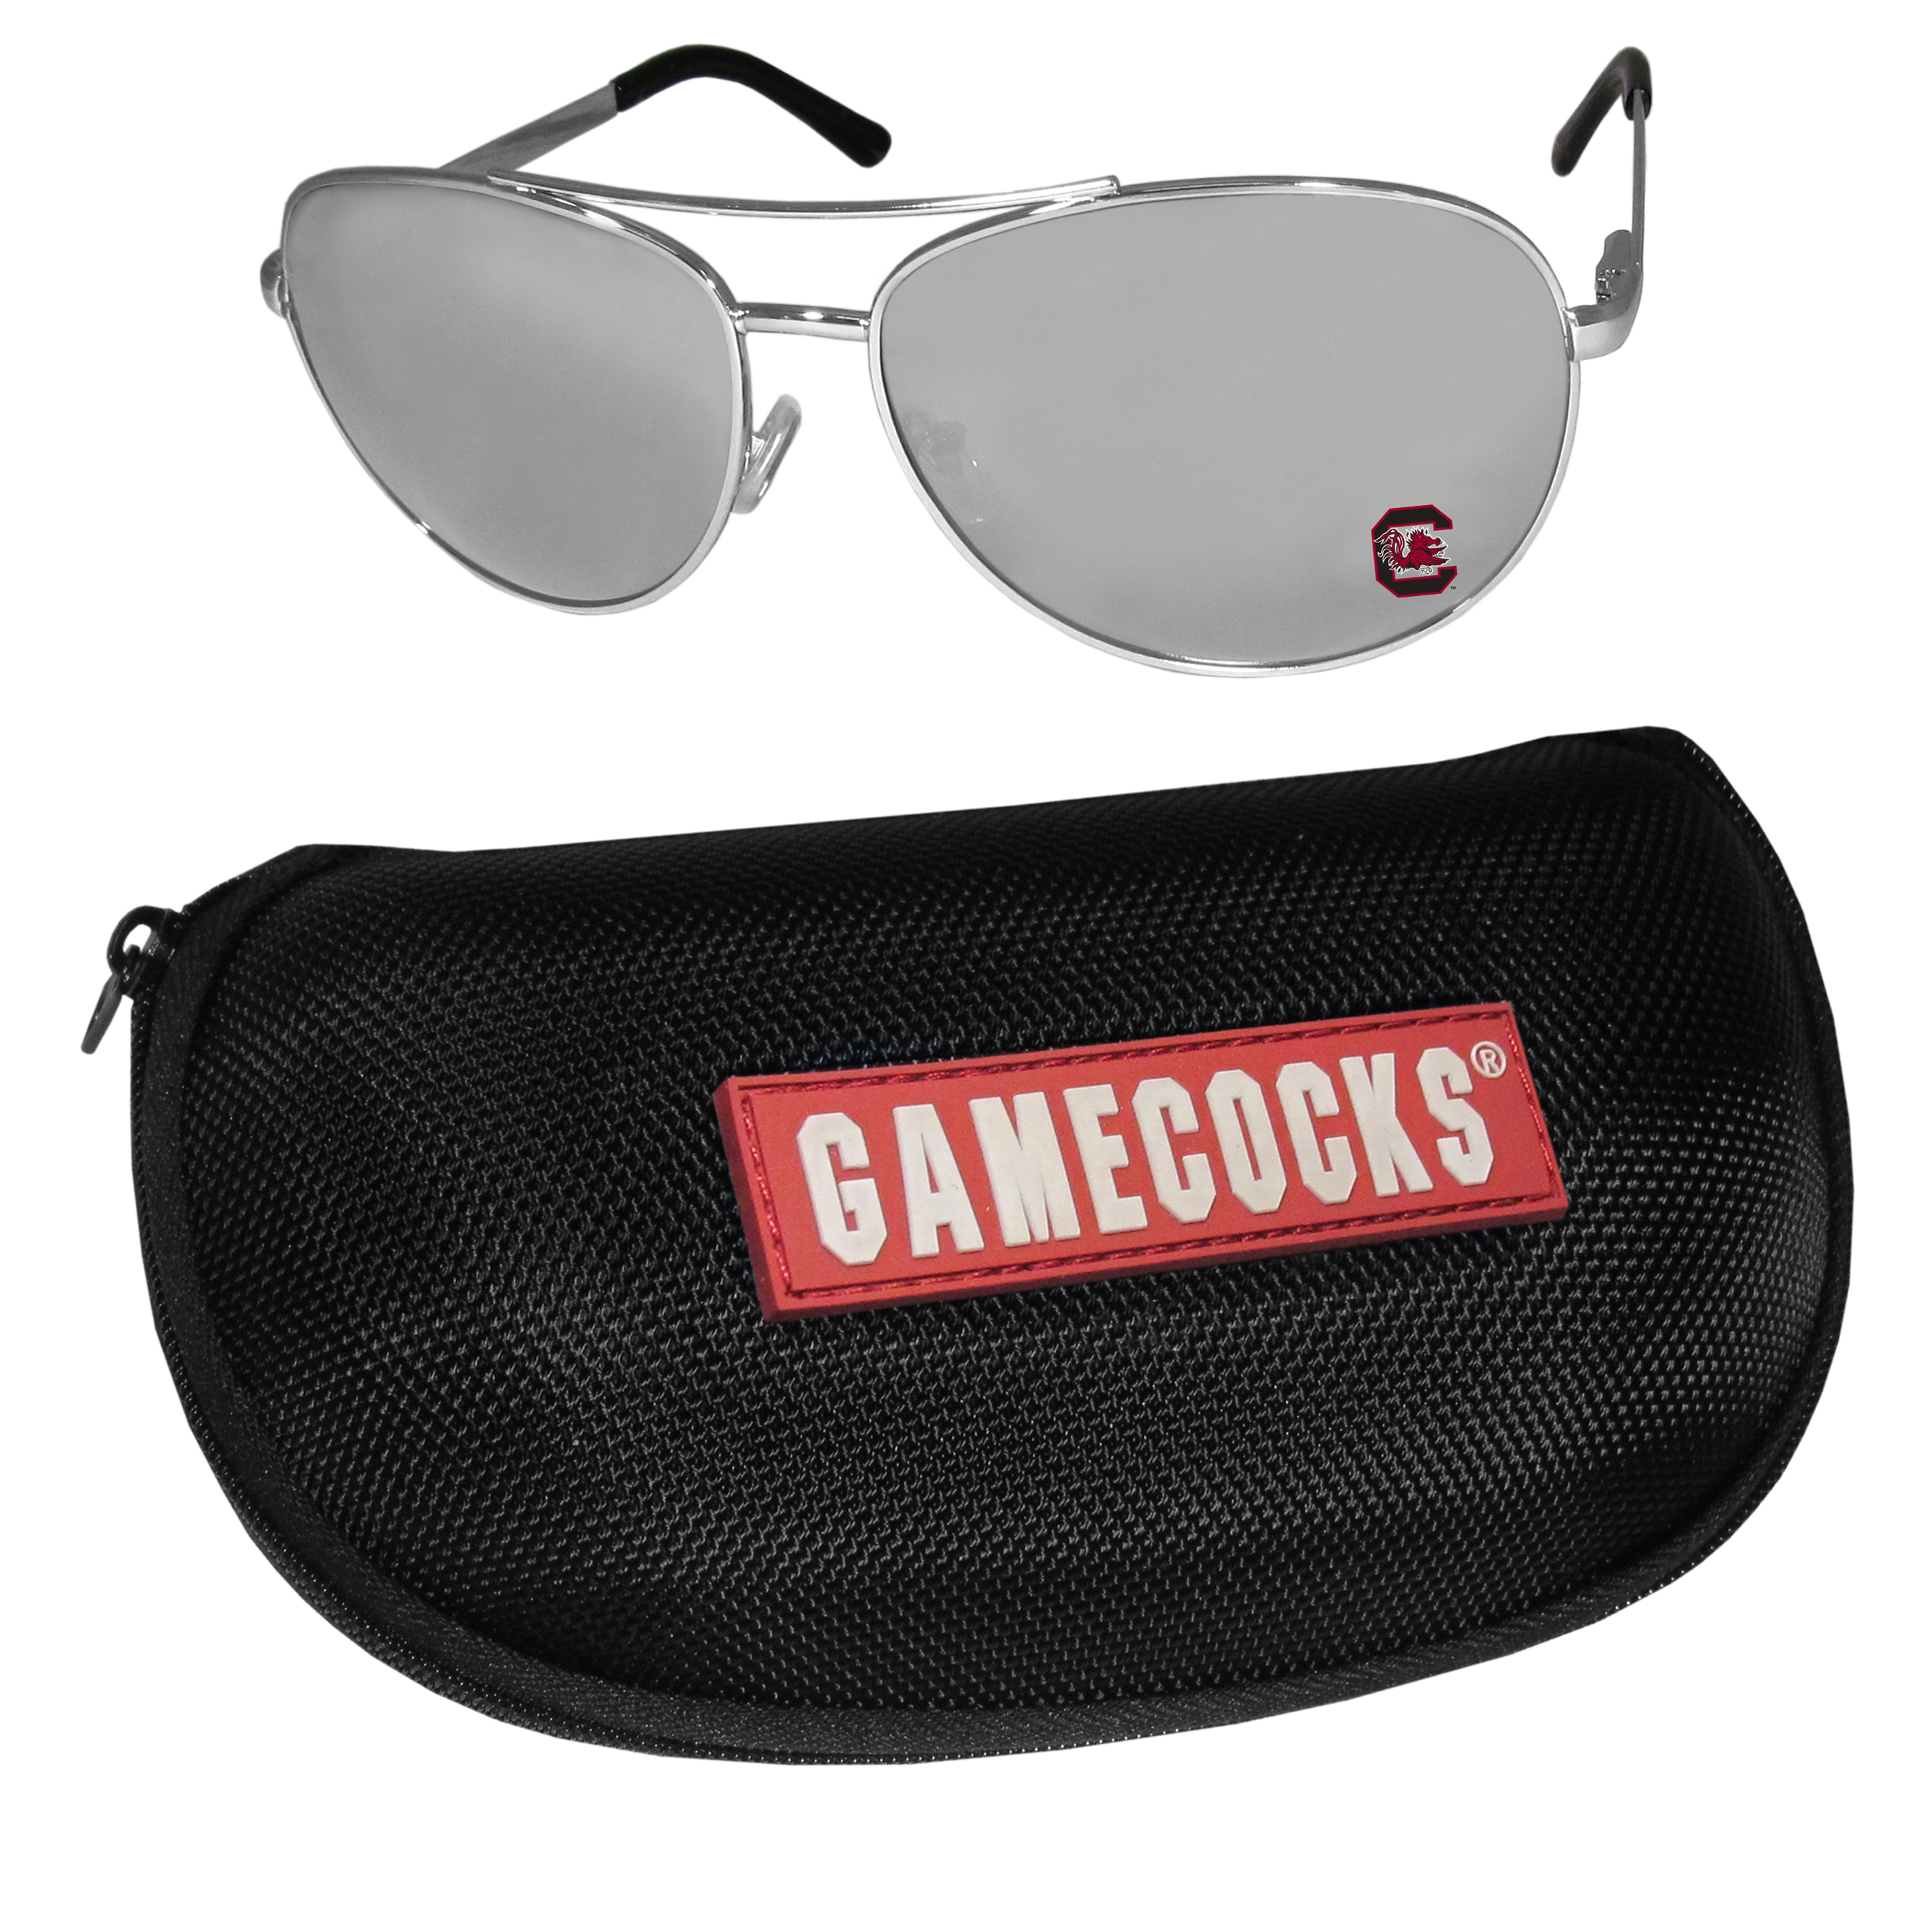 S. Carolina Gamecocks Aviator Sunglasses and Zippered Carrying Case - Aviator sunglasses are truly an iconic retro fashion statement that never goes out-of-style. Our S. Carolina Gamecocks  aviator sunglasses pair this classic look with your love of the game. The iridium coated lenses reduce glare while driving, boating, golfing and their 100% UVA/UVB rating provides you with the maximum UV protection for all your outdoor activities. A millennial favorite, these affordable designer frames are the perfect eyewear accessory for a sports fan that is looking for high-quality at an affordable price. The durable, flex hinged frames are tough enough for hiking and camping or if you prefer sun bathing by the pool or on the beach these shades will really stand the test of time. The sunglasses come with a hard shell zippered case which has a large team logo on the lid that will make even the most die-hard fan proud!